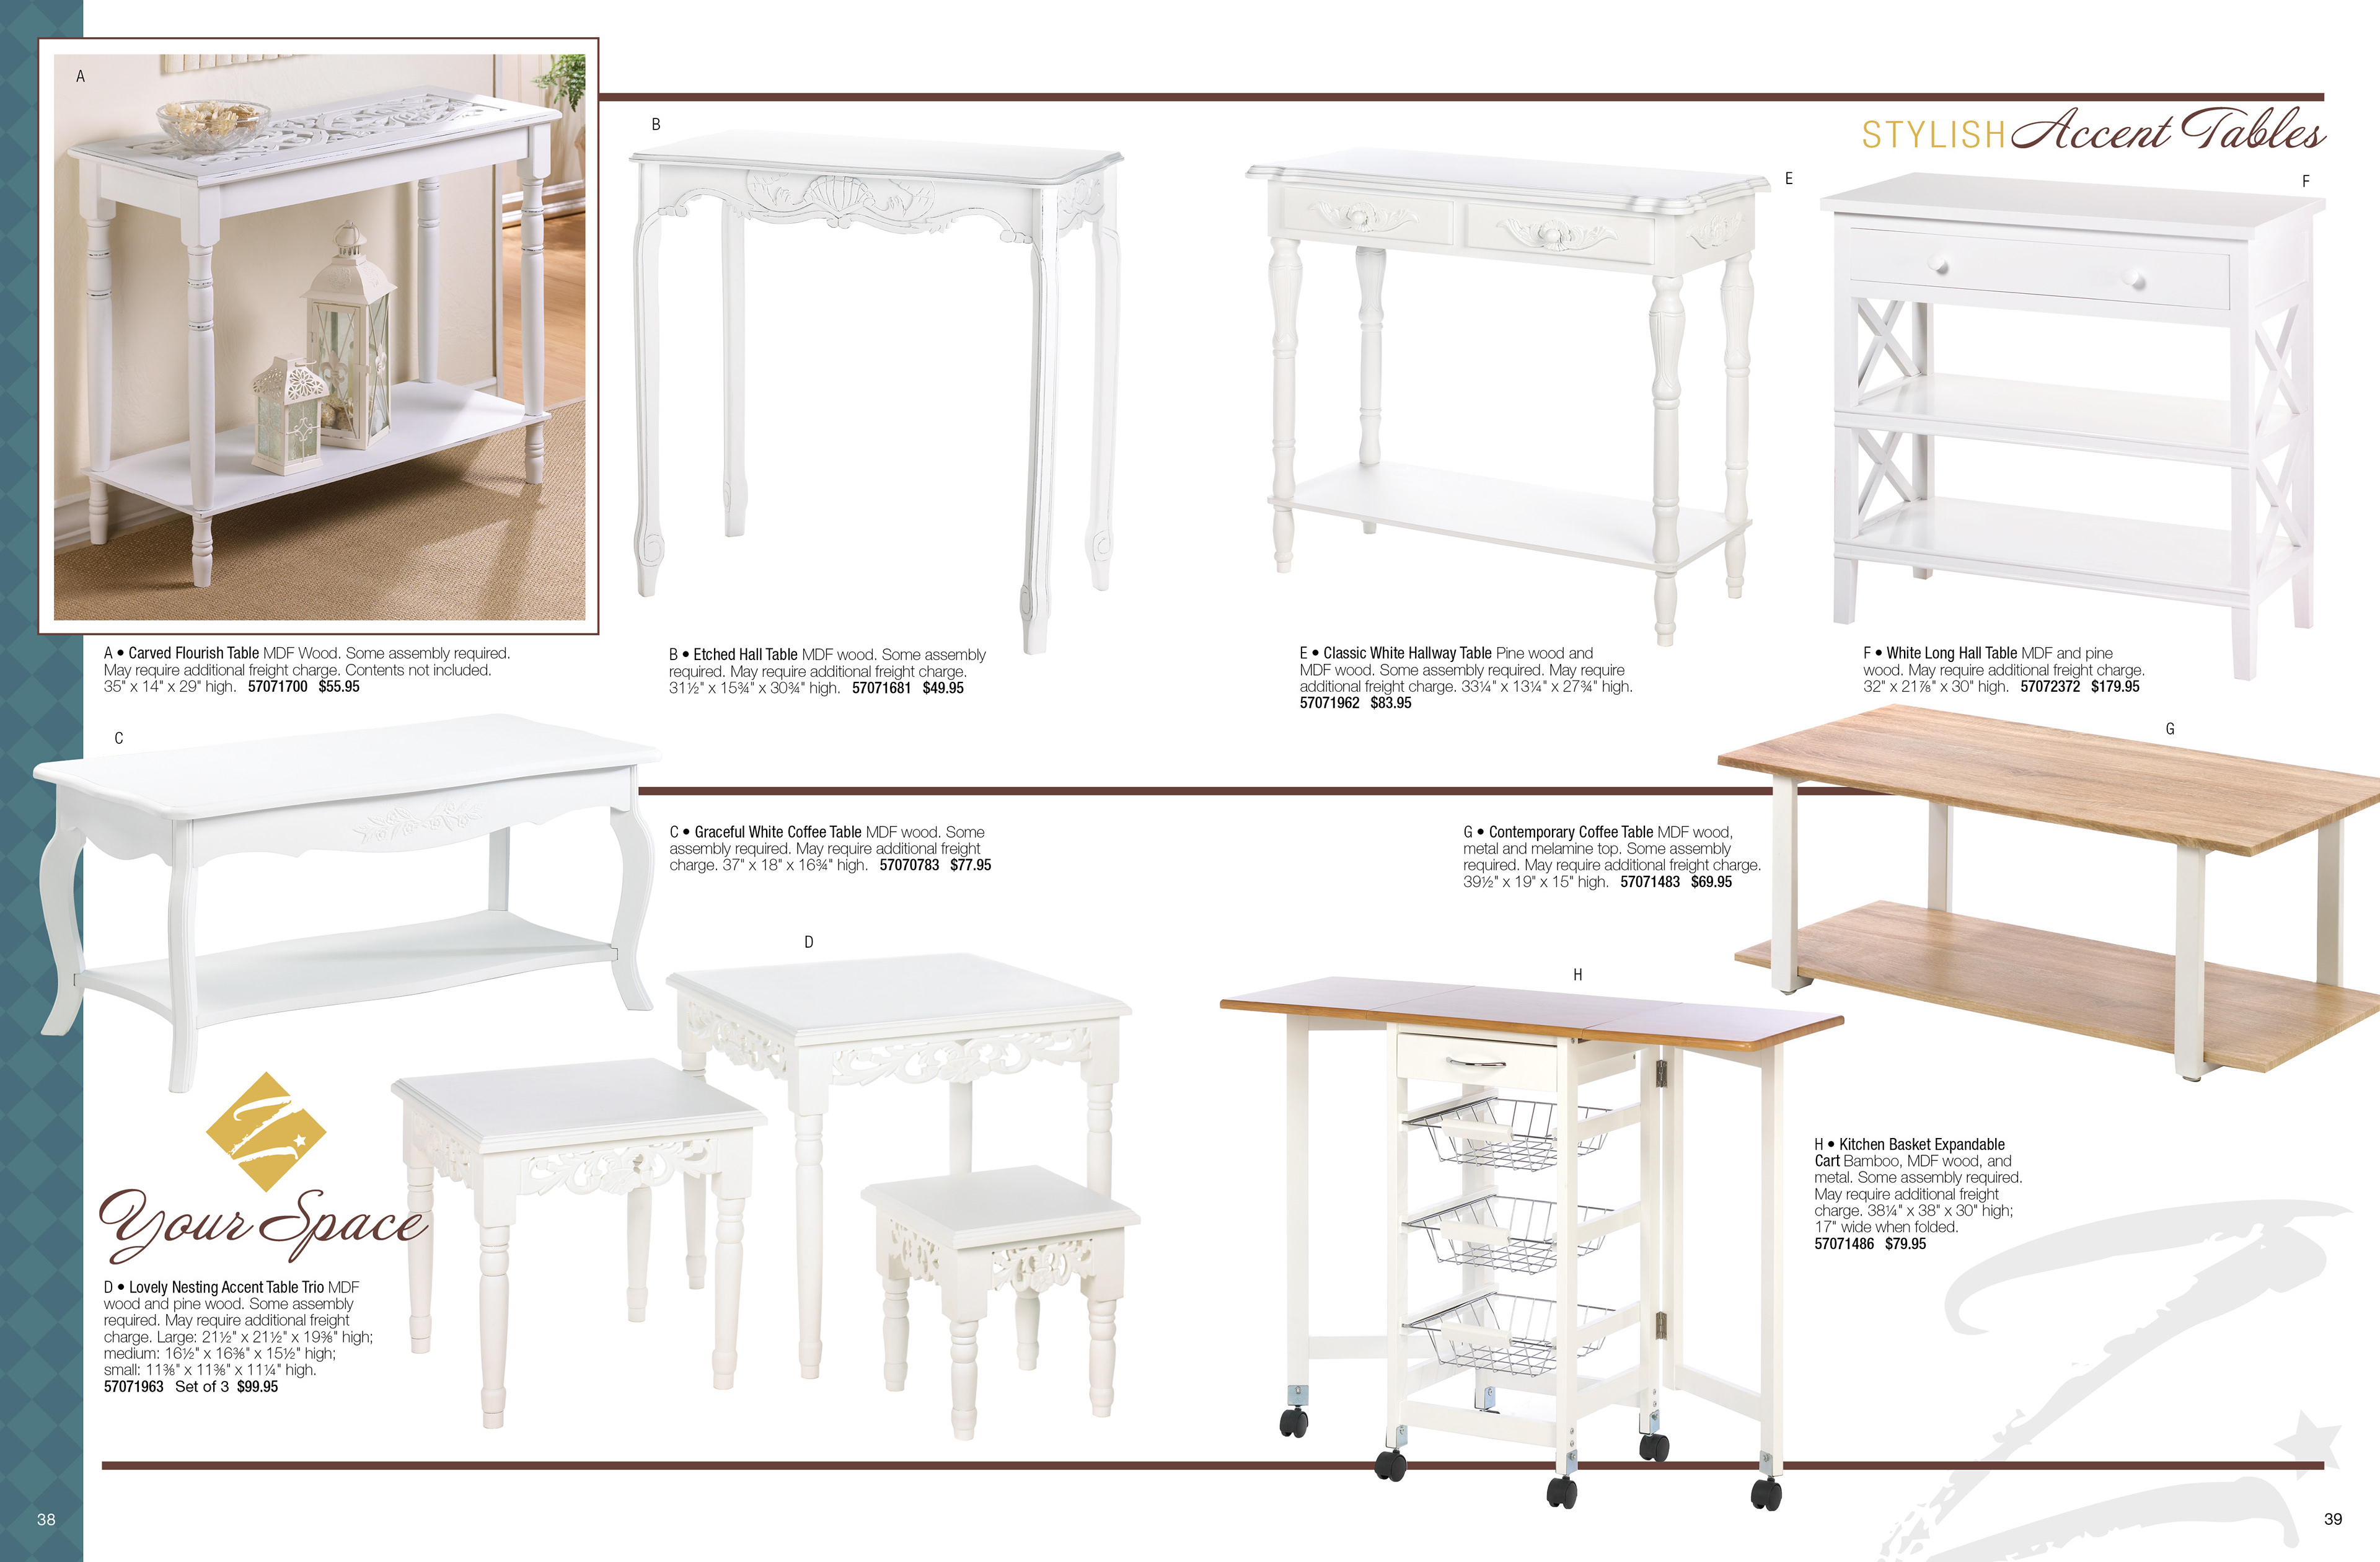 karen ose zingz home decor book high round accent table design concept production for specialty catalog ebook and print one the four categories products piece hampton bay pembrey